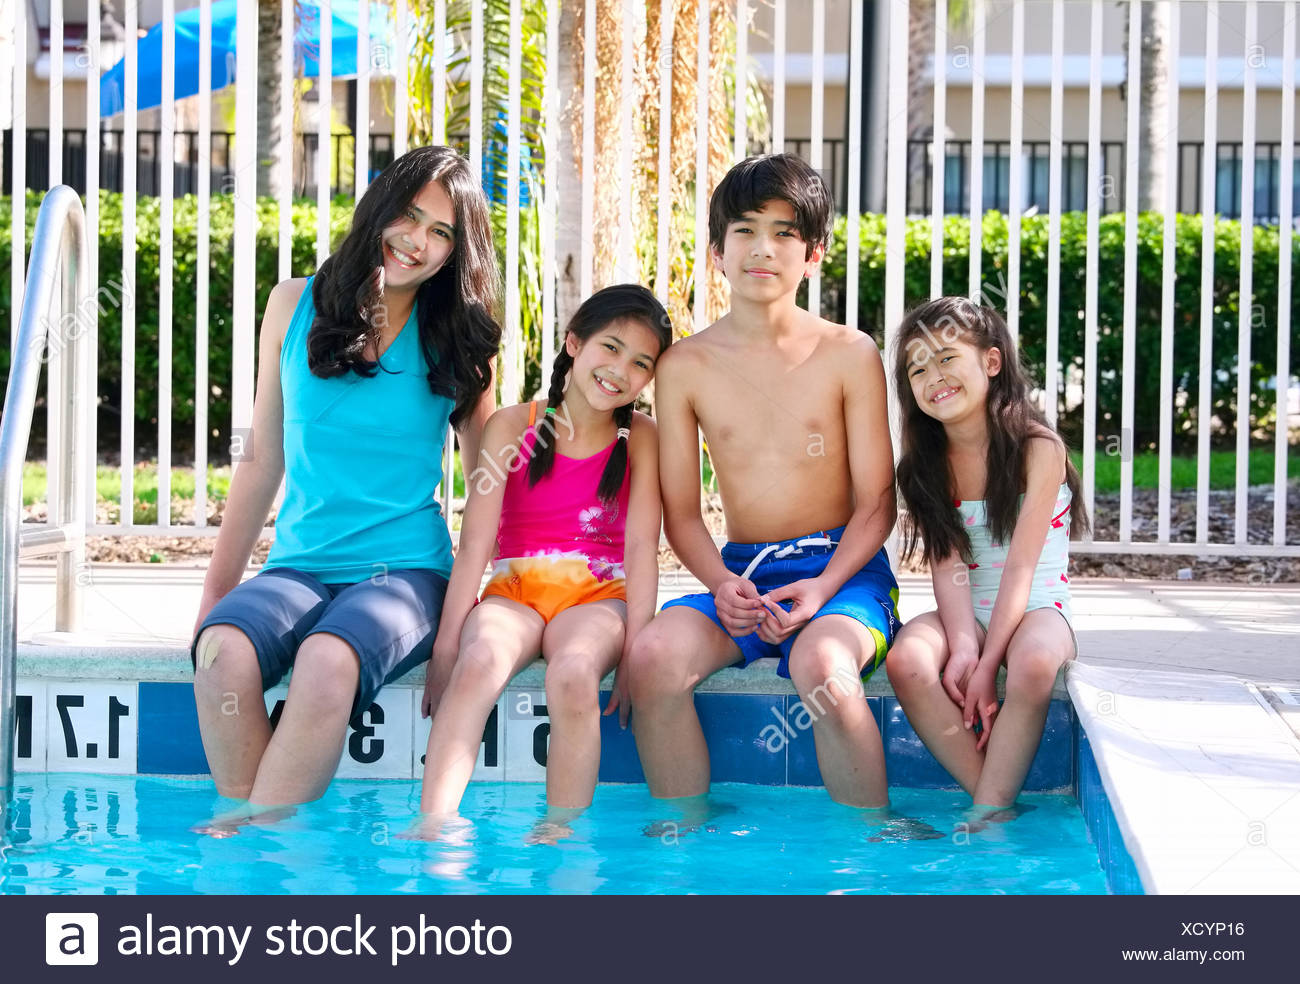 Four children, siblings, enjoying the pool together - Stock Image